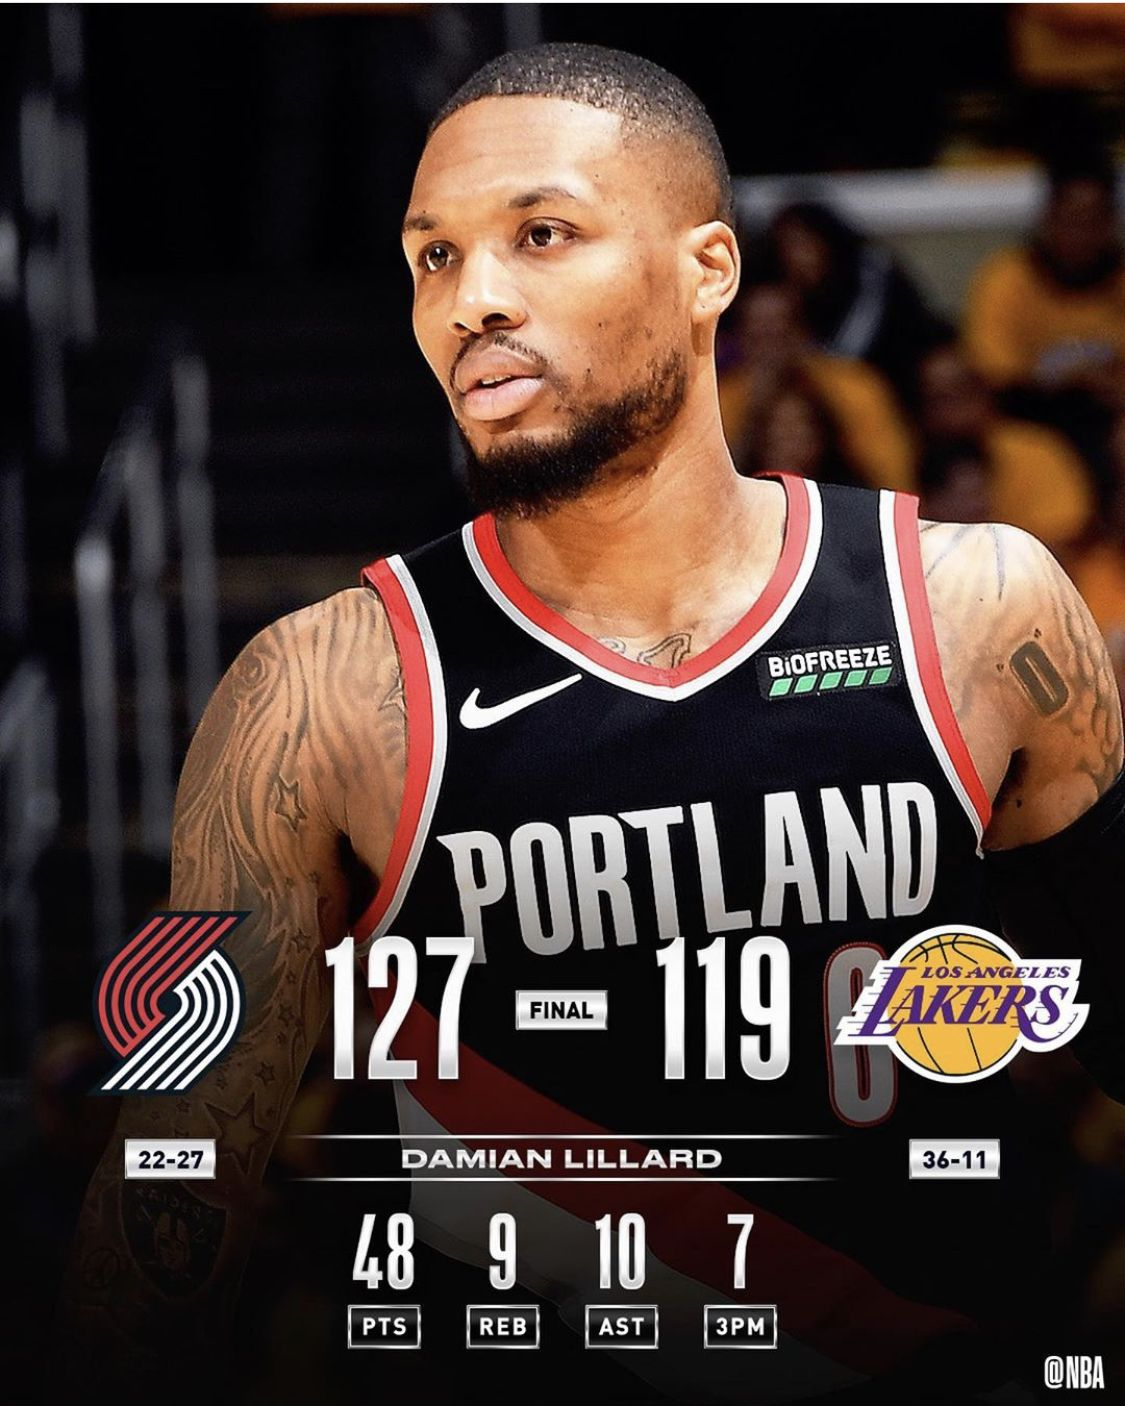 Pin by Daniel Son on Dame Lillard in 2020 Nba, Mba